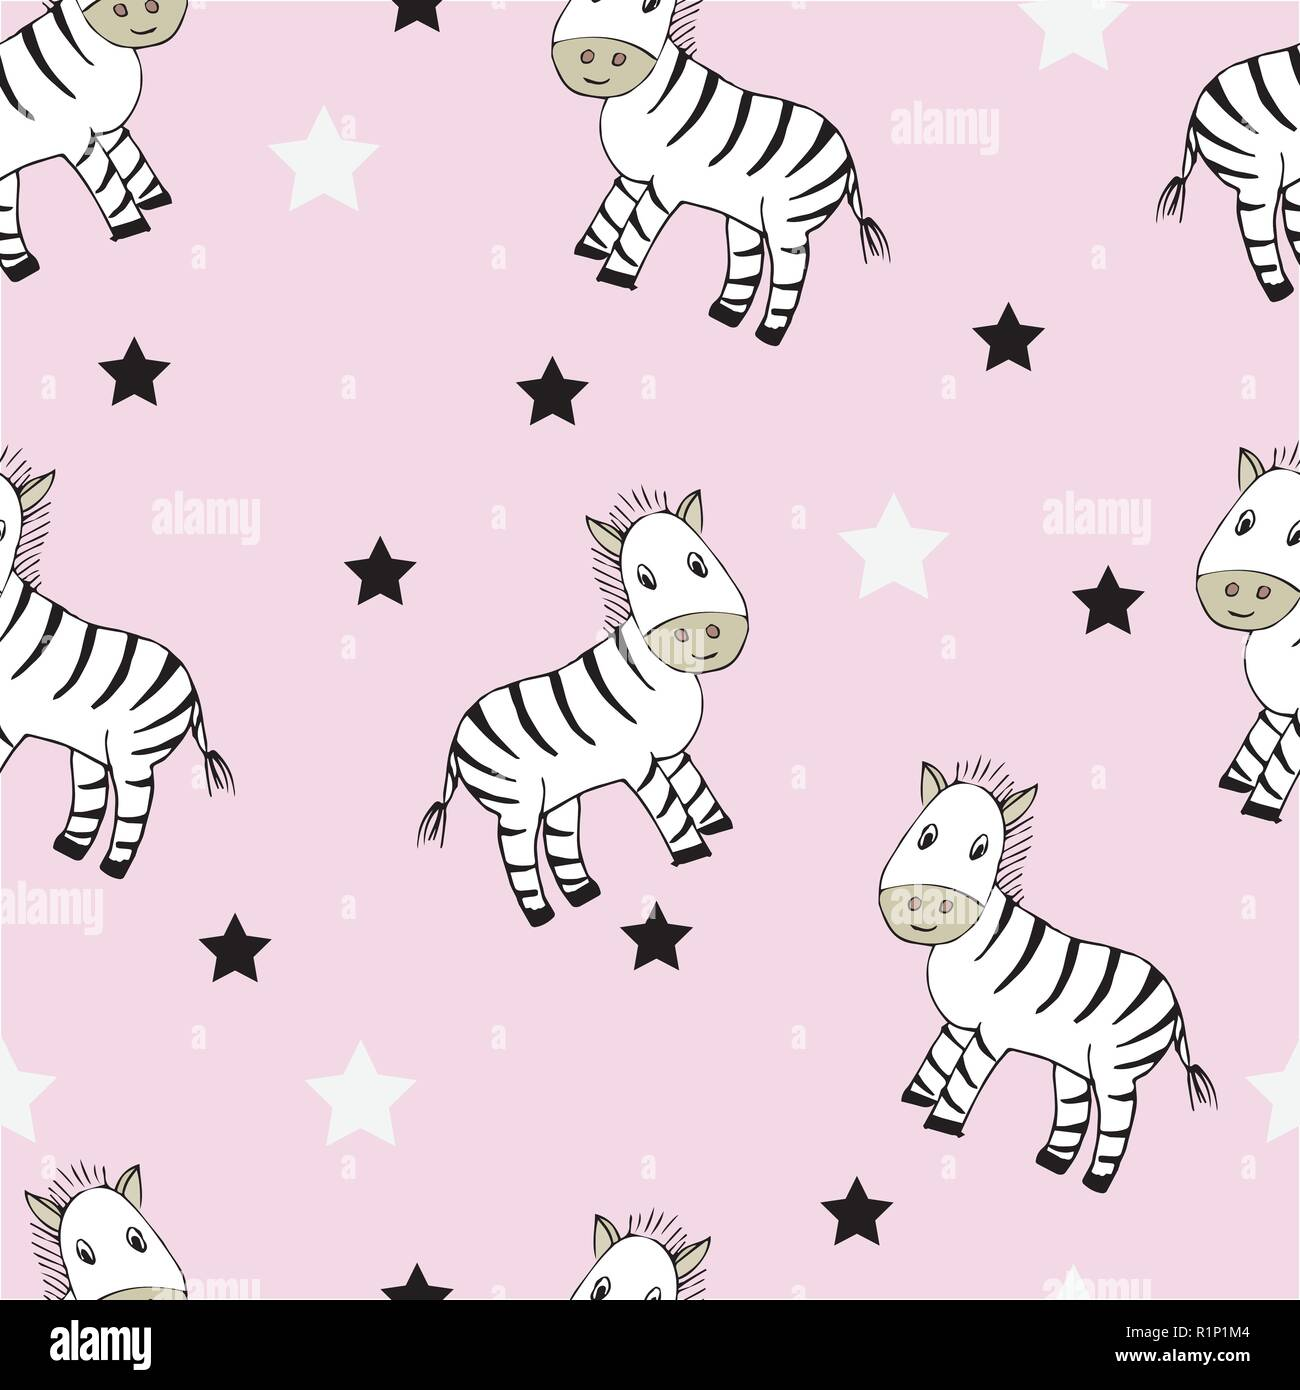 Funny Seamless Childish Pattern With Cute Zebras And Black And